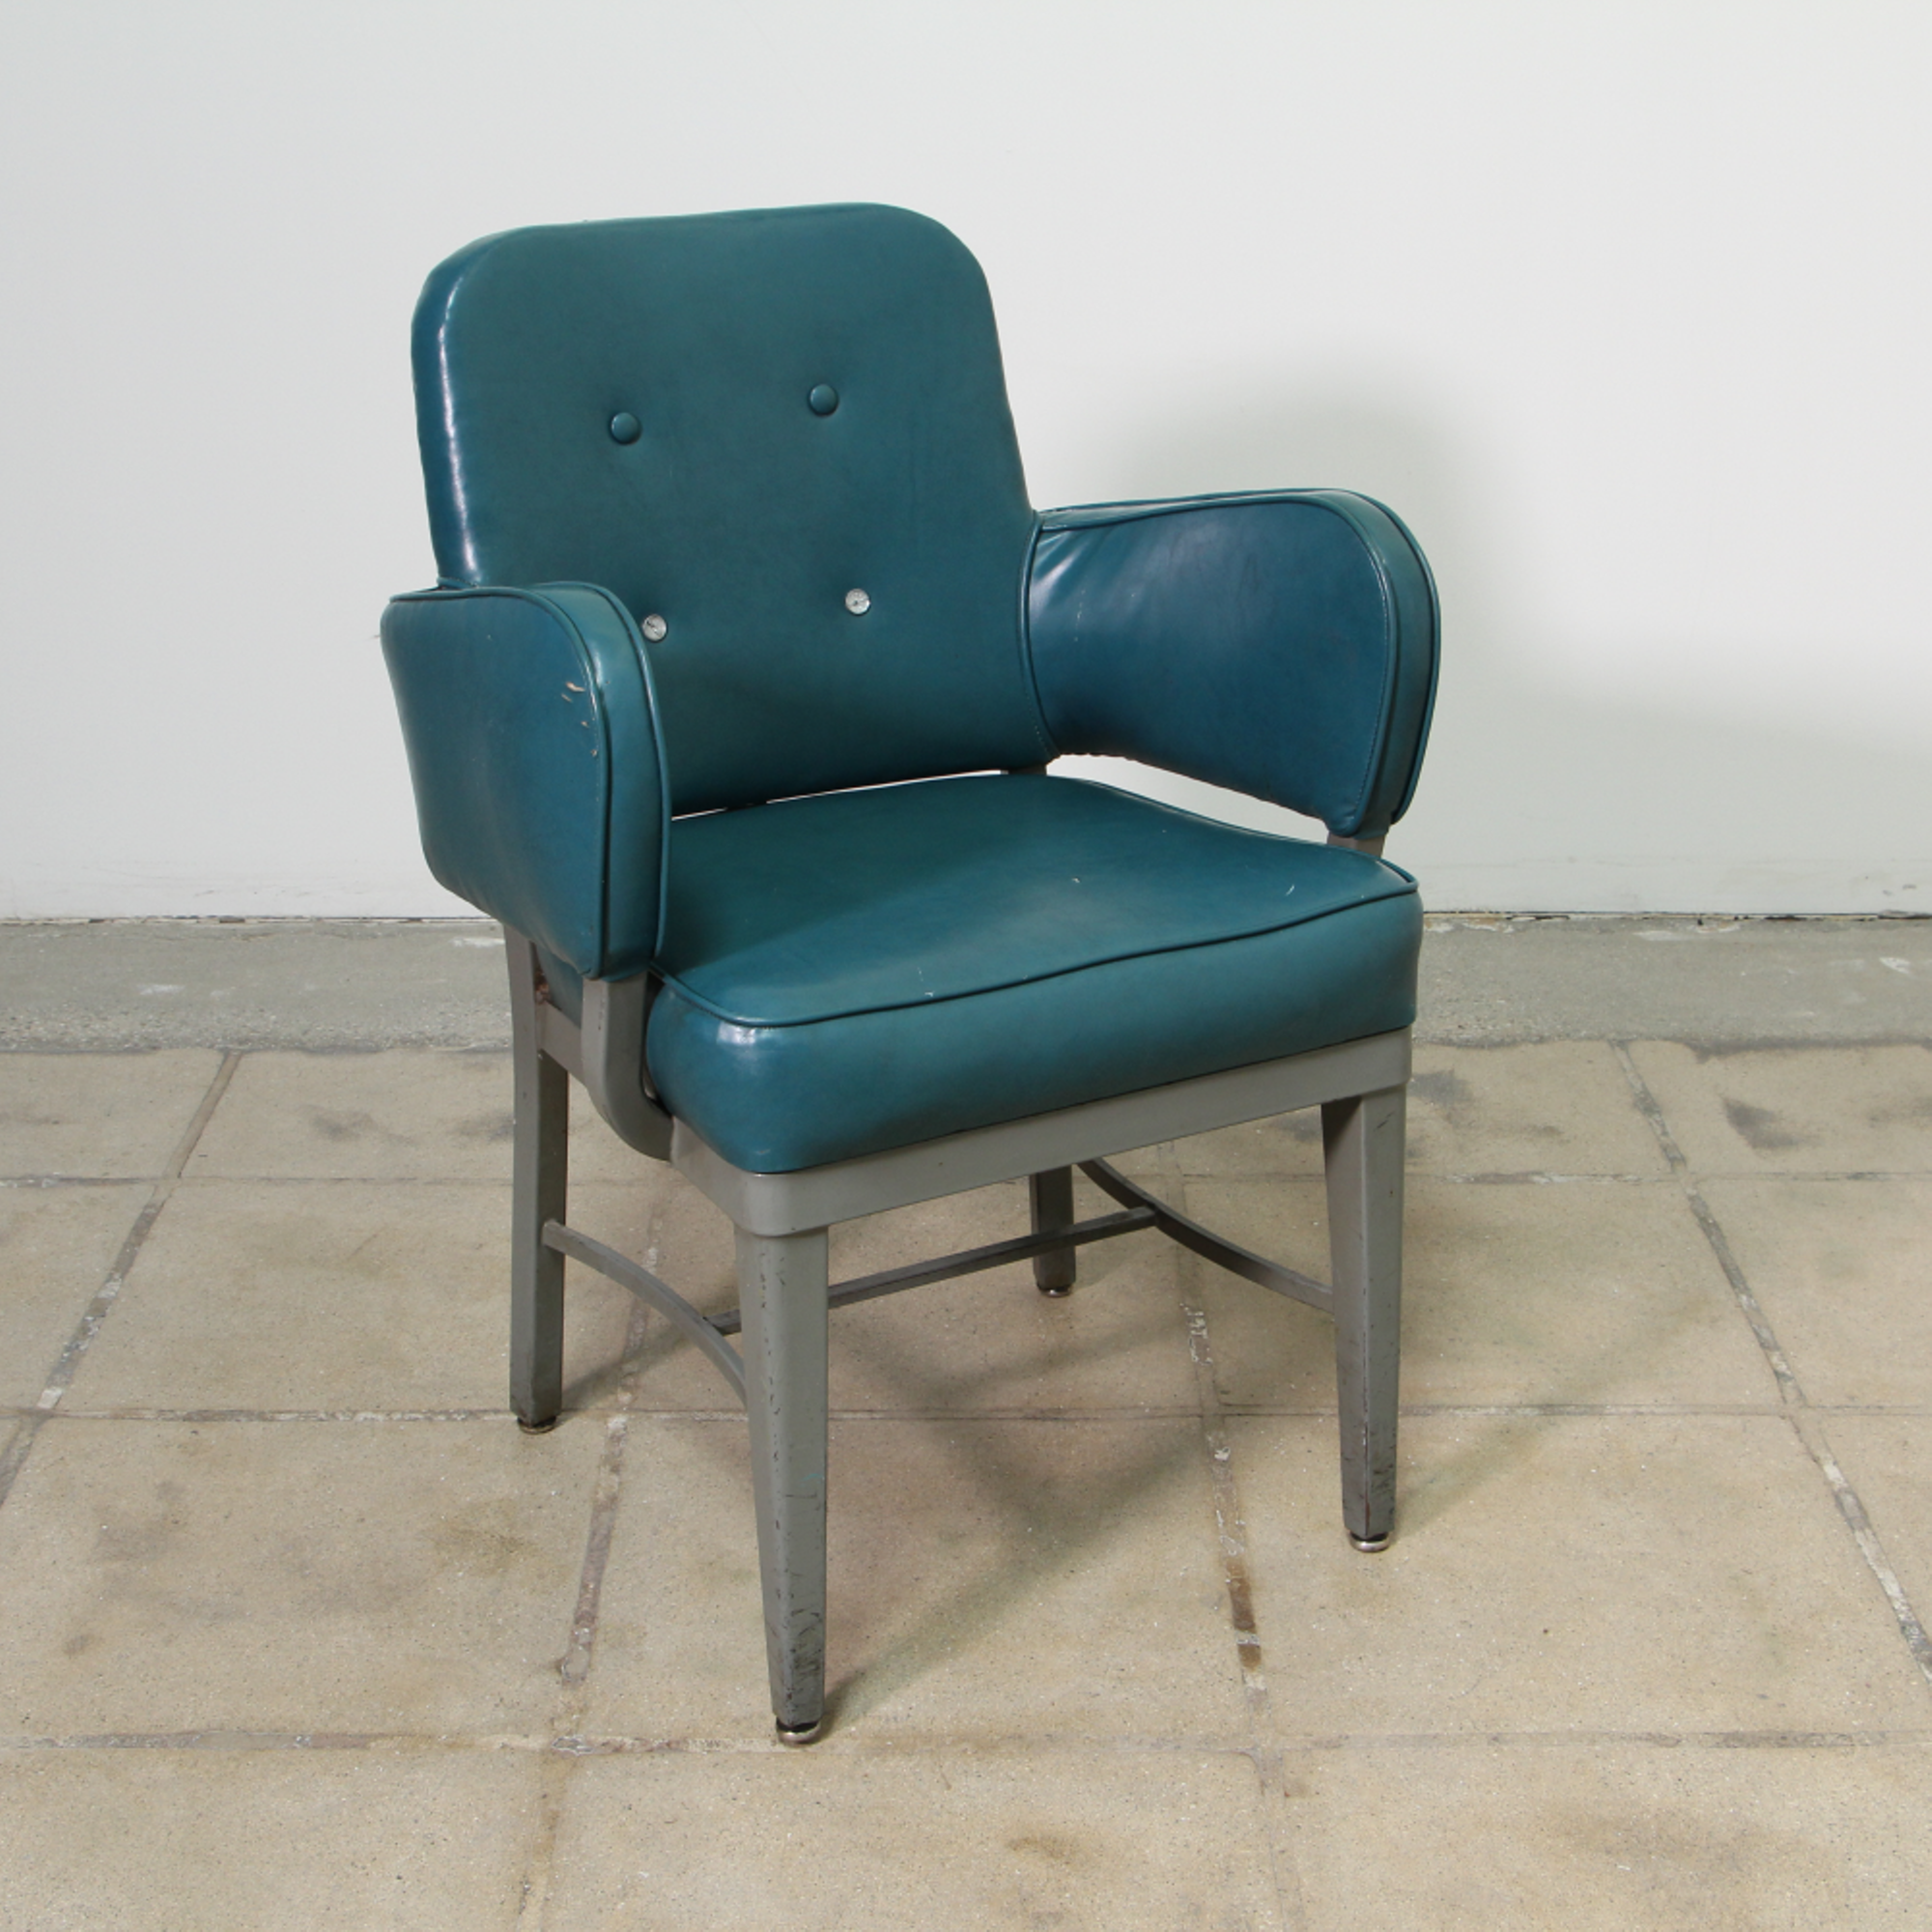 This Industrial Armchair Is Featured In A Durable Metal With A Distressed  Gray Paint Finish. This Chair Is In Great Condition With Tapered Legs, ...